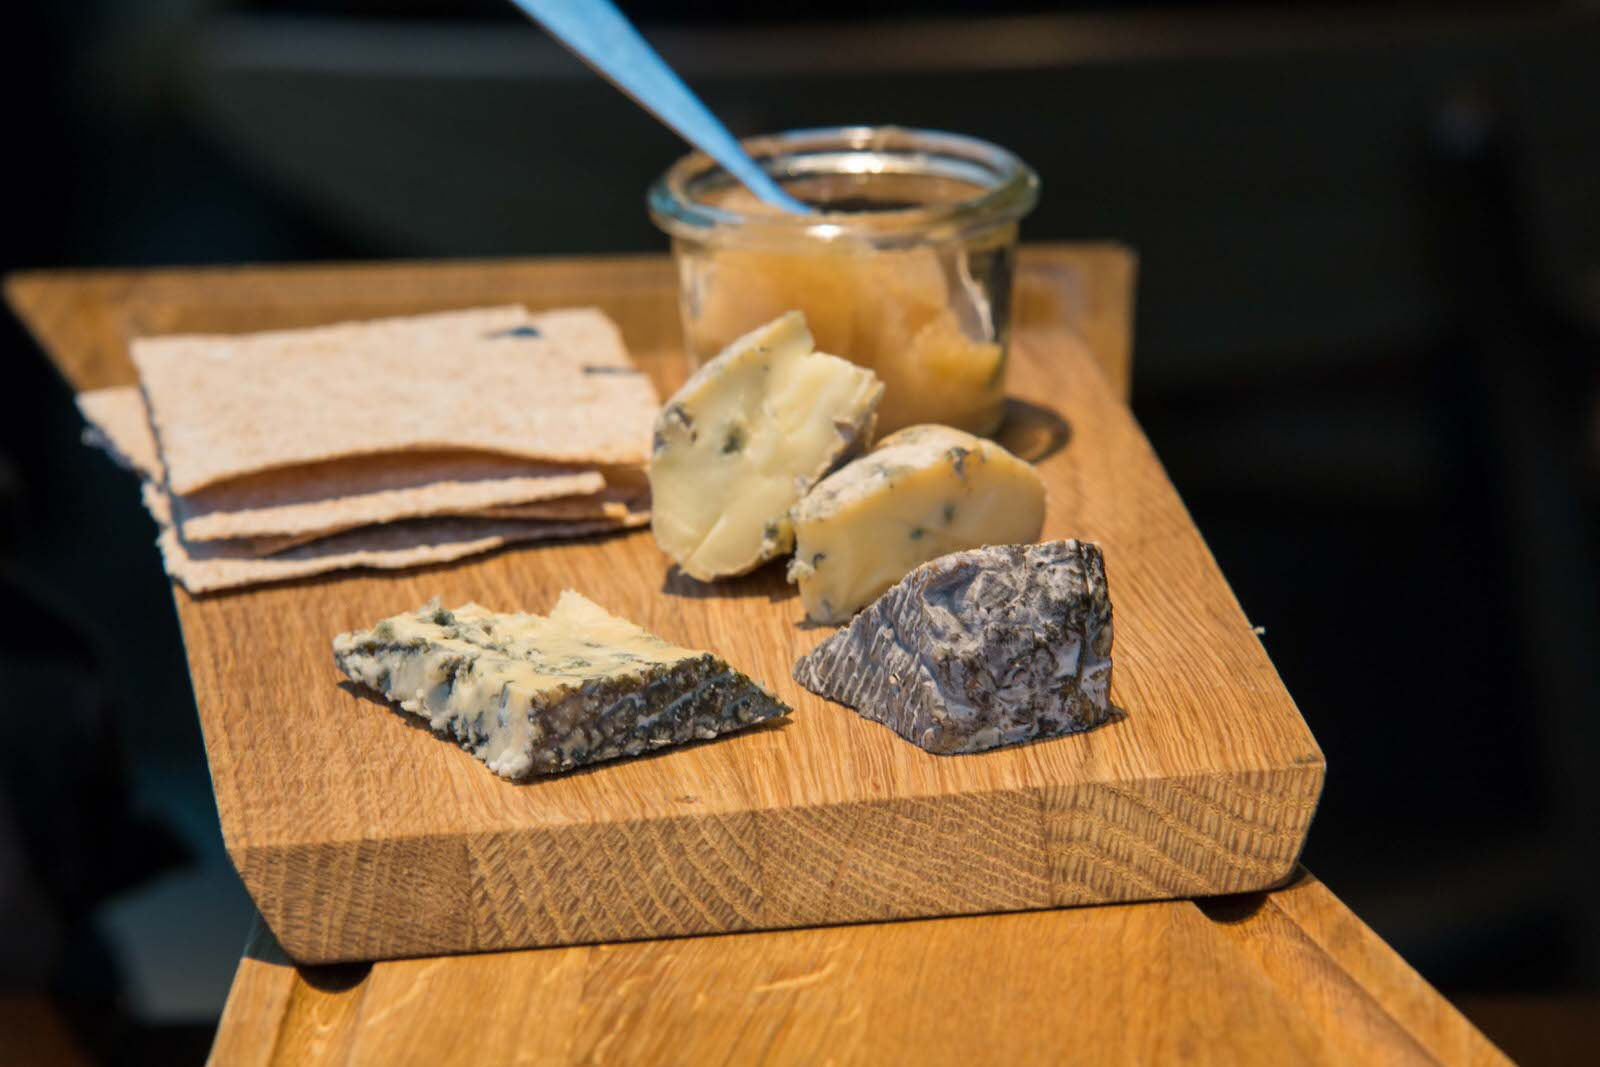 Norwegian blue cheeses with apple chutney. Photo by: Arnold Lan.